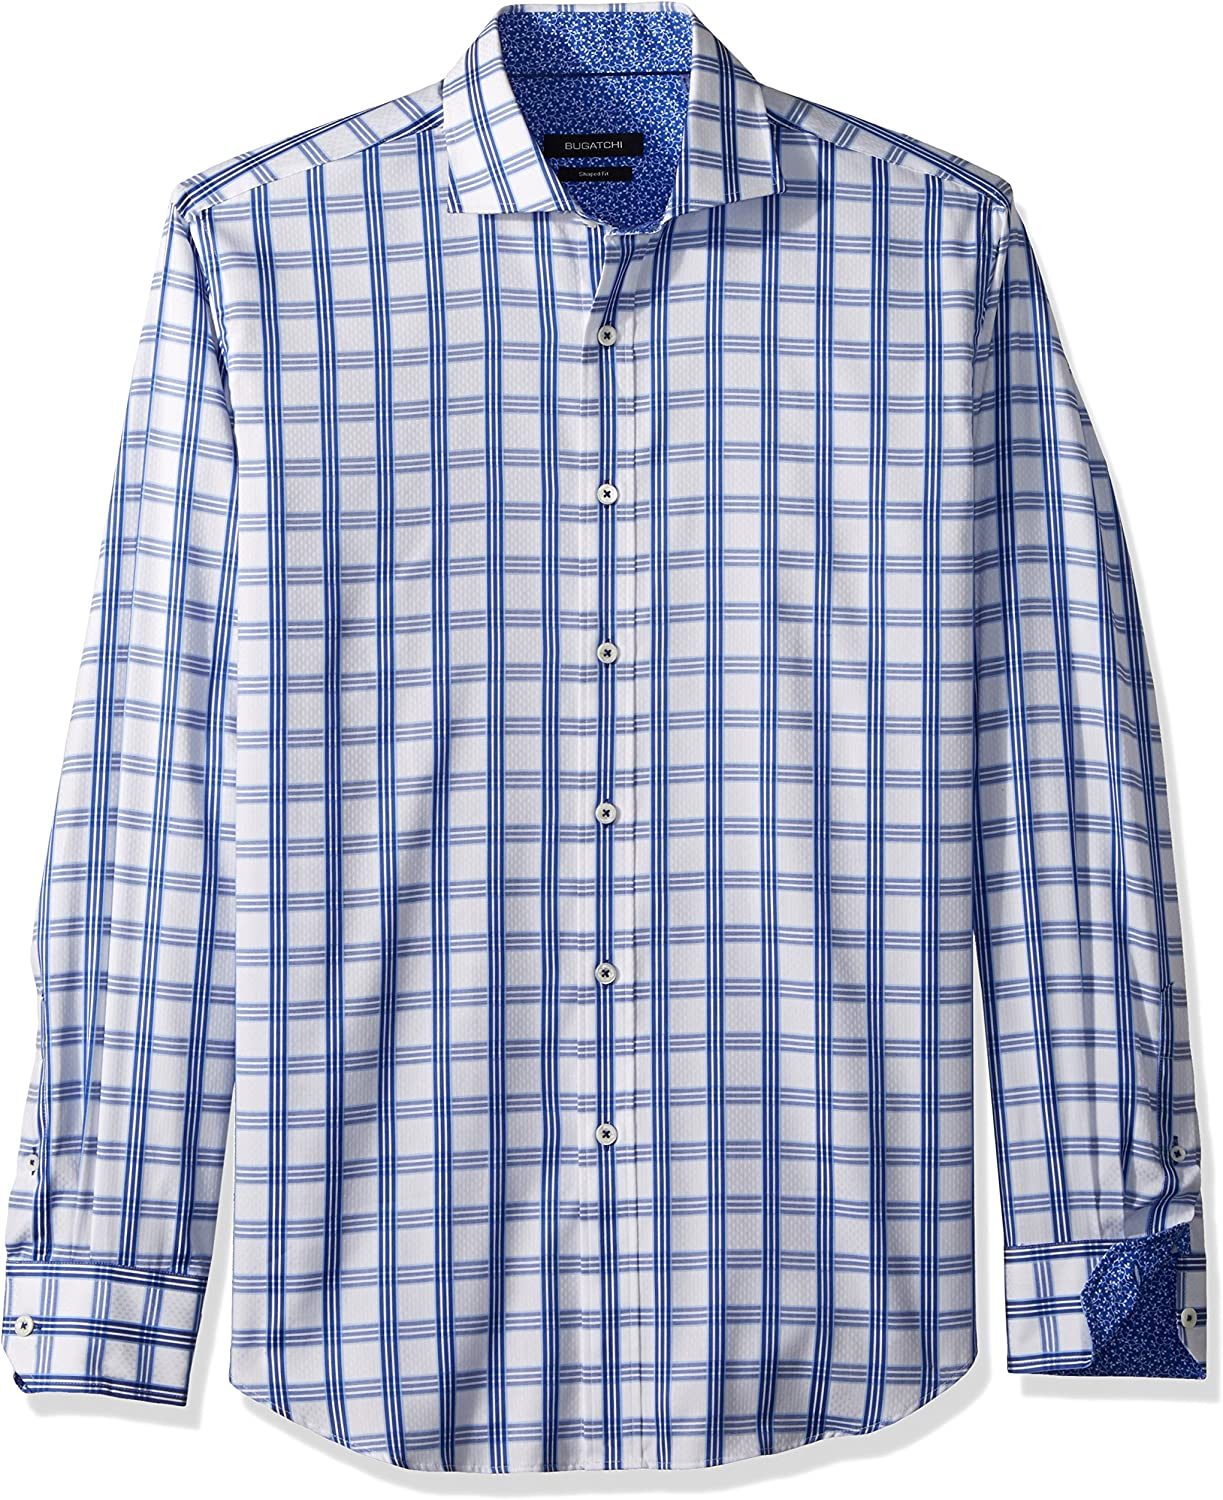 Bugatchi Men's Long Sleeve Brand Sale Special Price new Fitted Jacquard Cotton Shirt Check